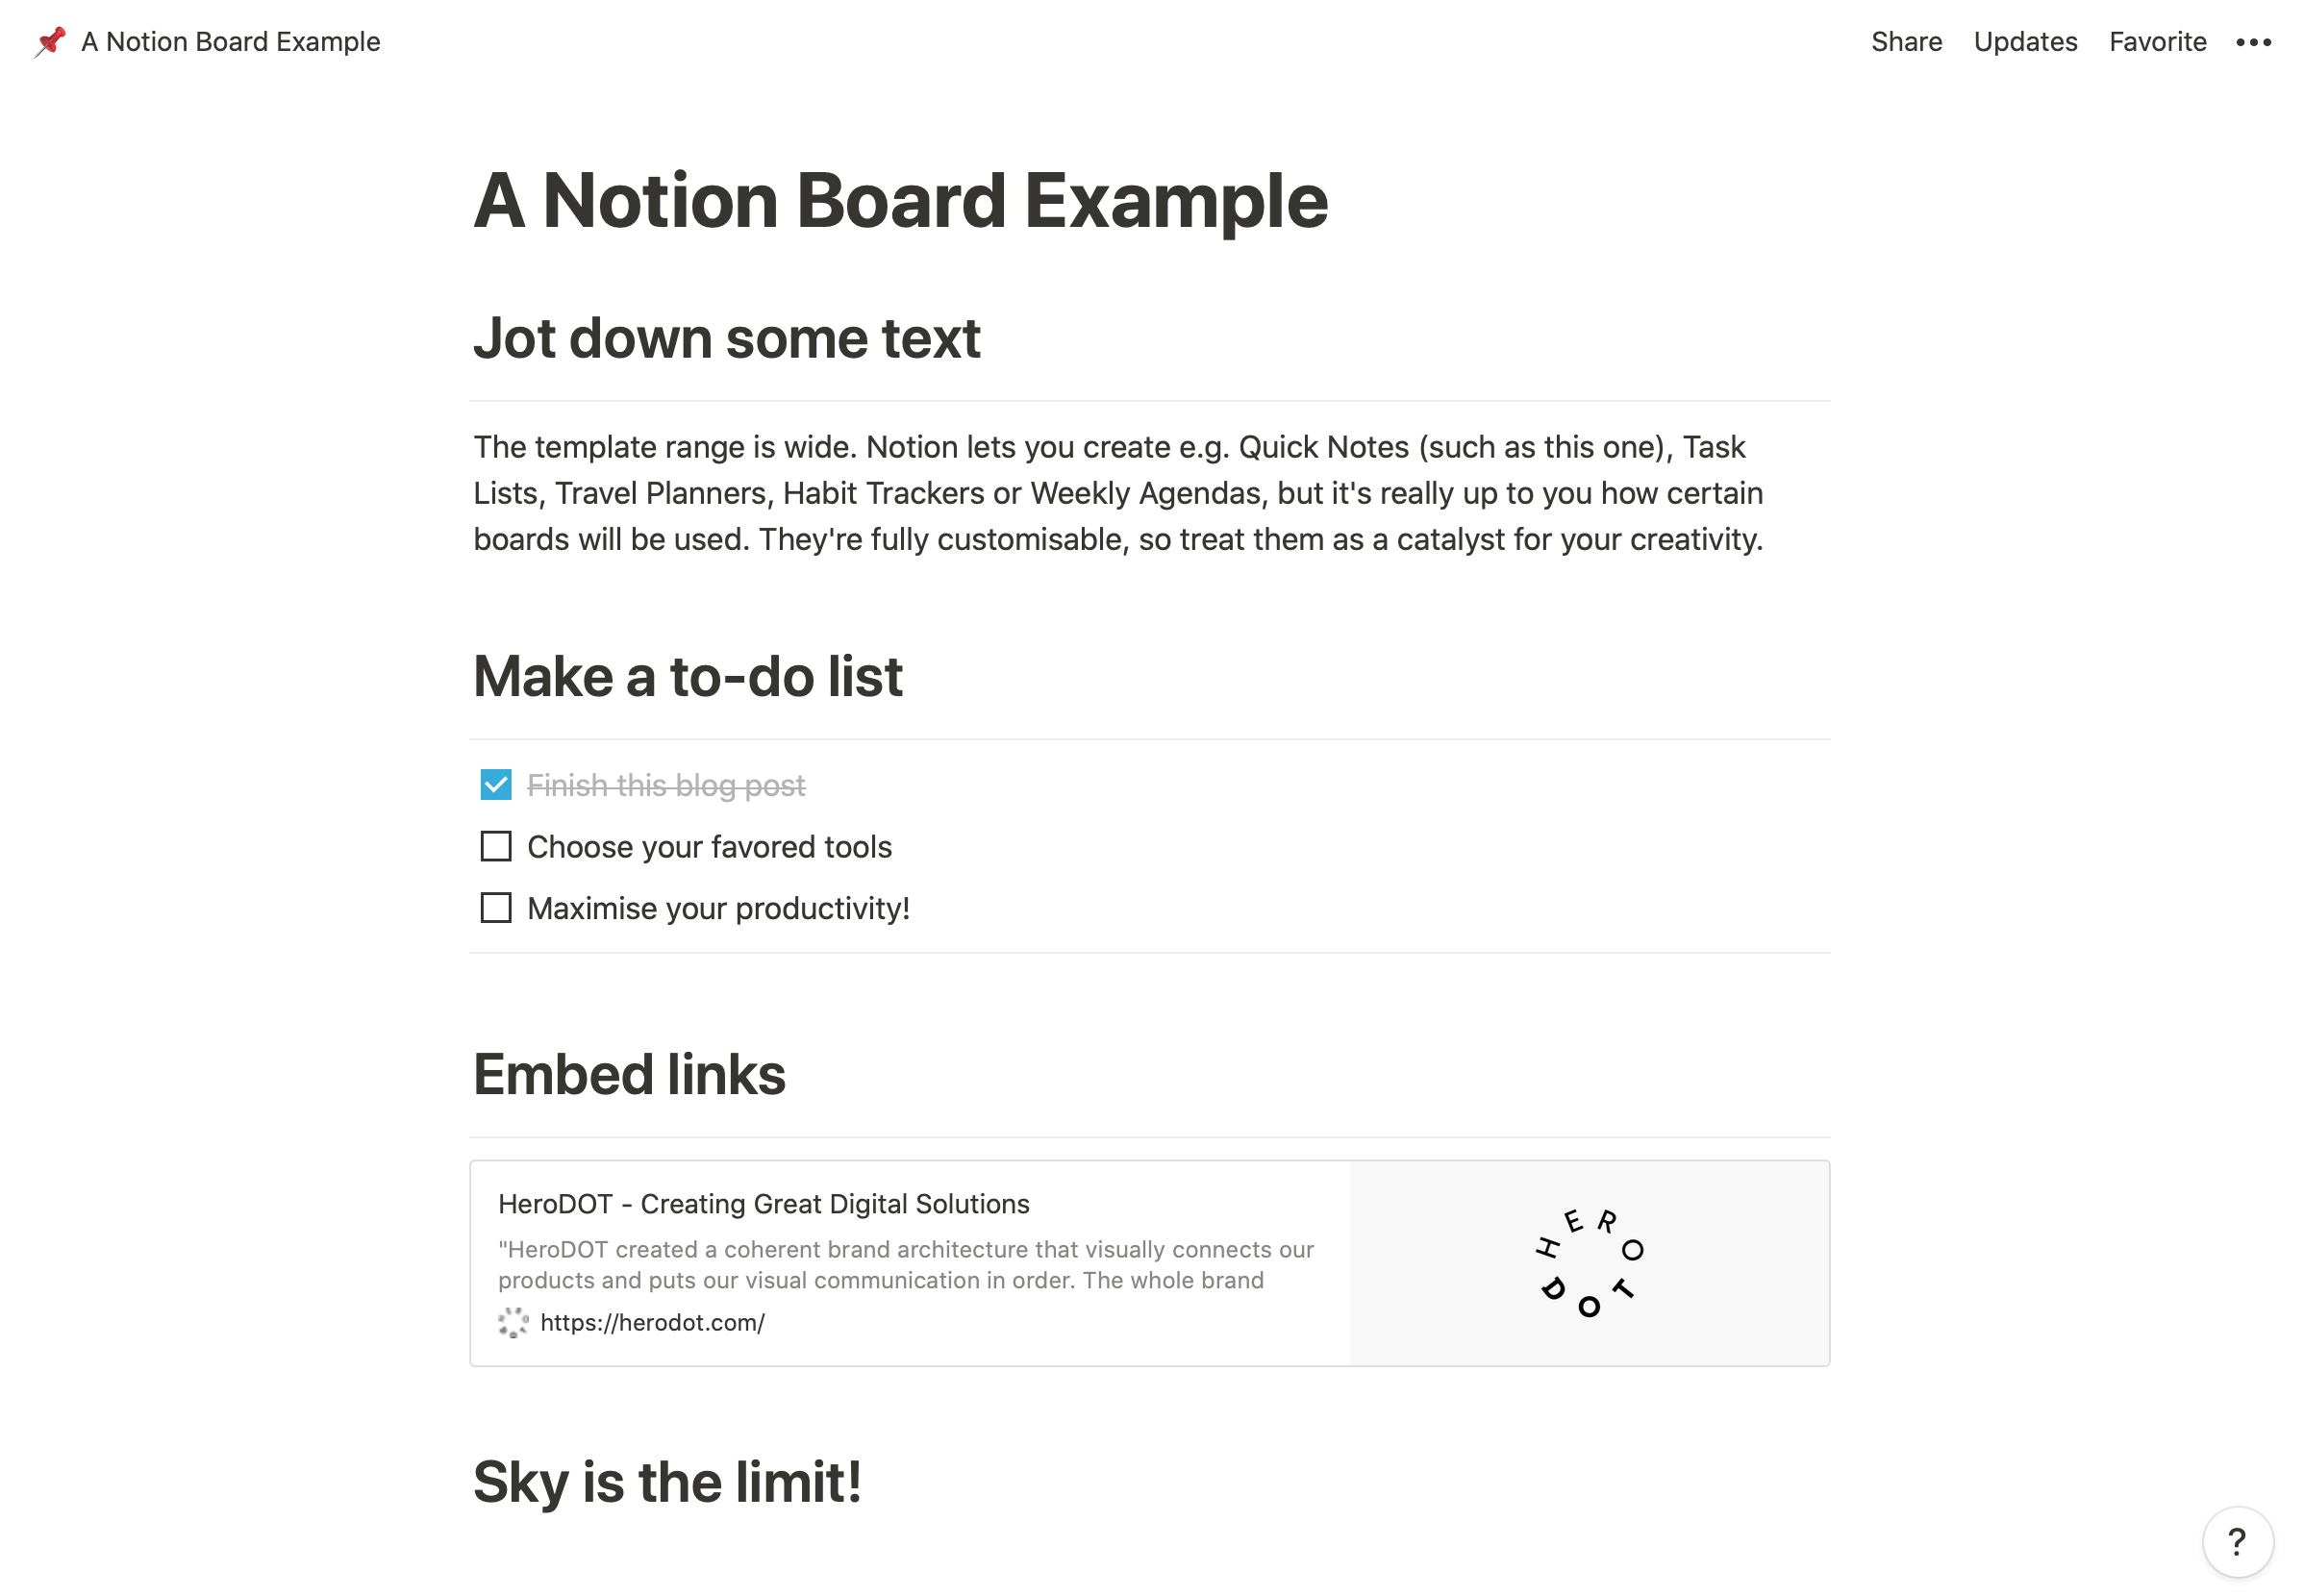 Notion is a work tool that facilitates project management. Backlogs, project management boards, to-do lists - you name it.